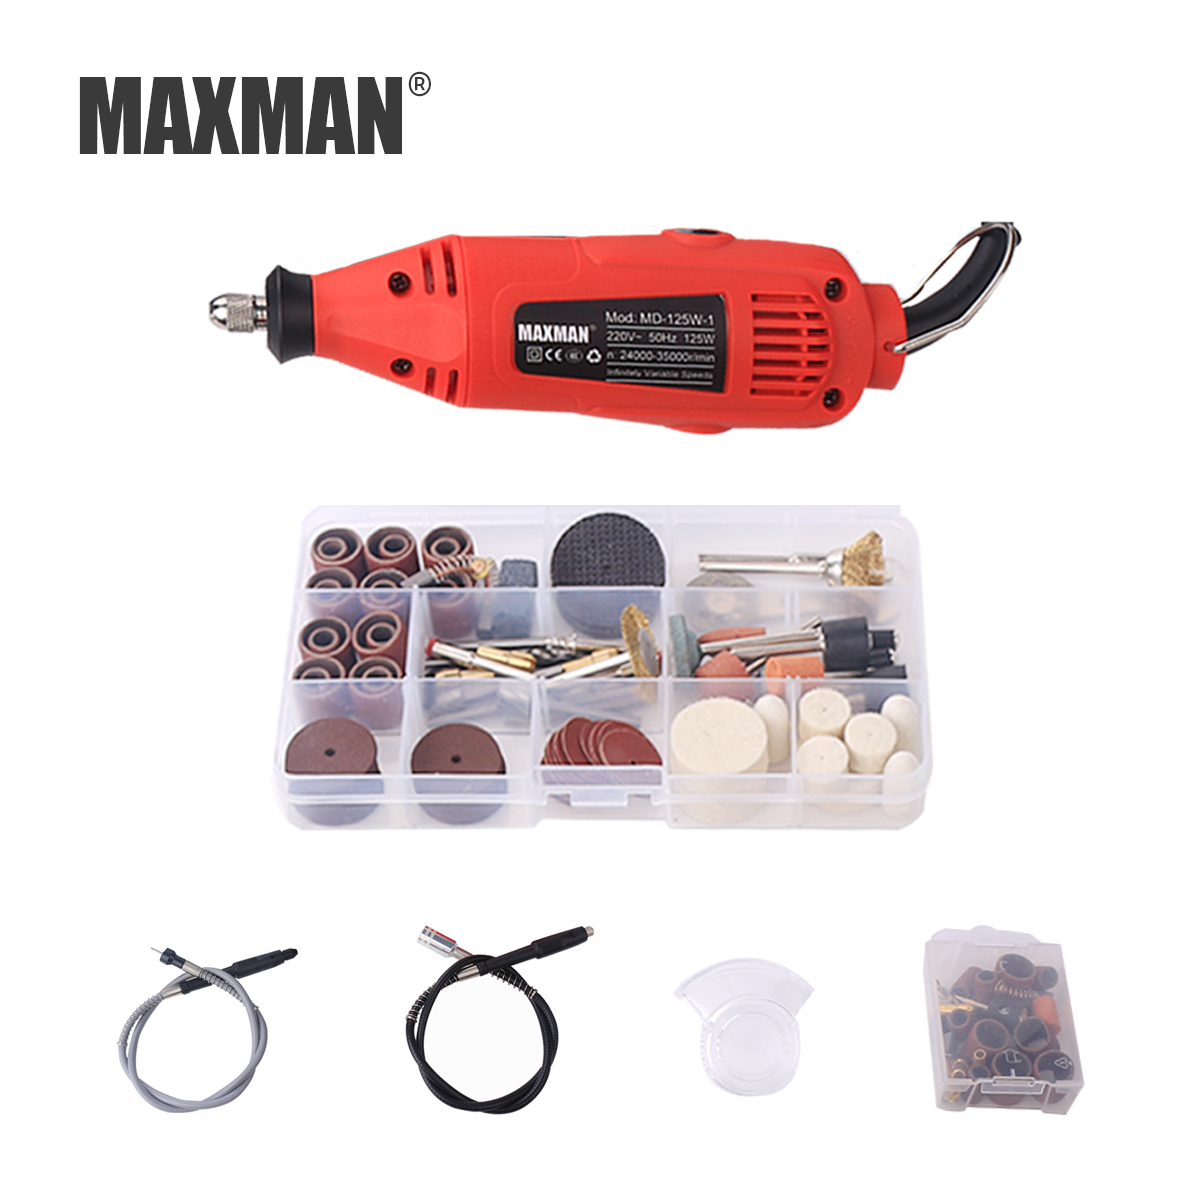 MAXMAN Dremel 125W Engraving Pen Electric Drill DIY Drill Electric Rotary Tool grinder Mini Drill Mini-mill Grinding Machine все цены